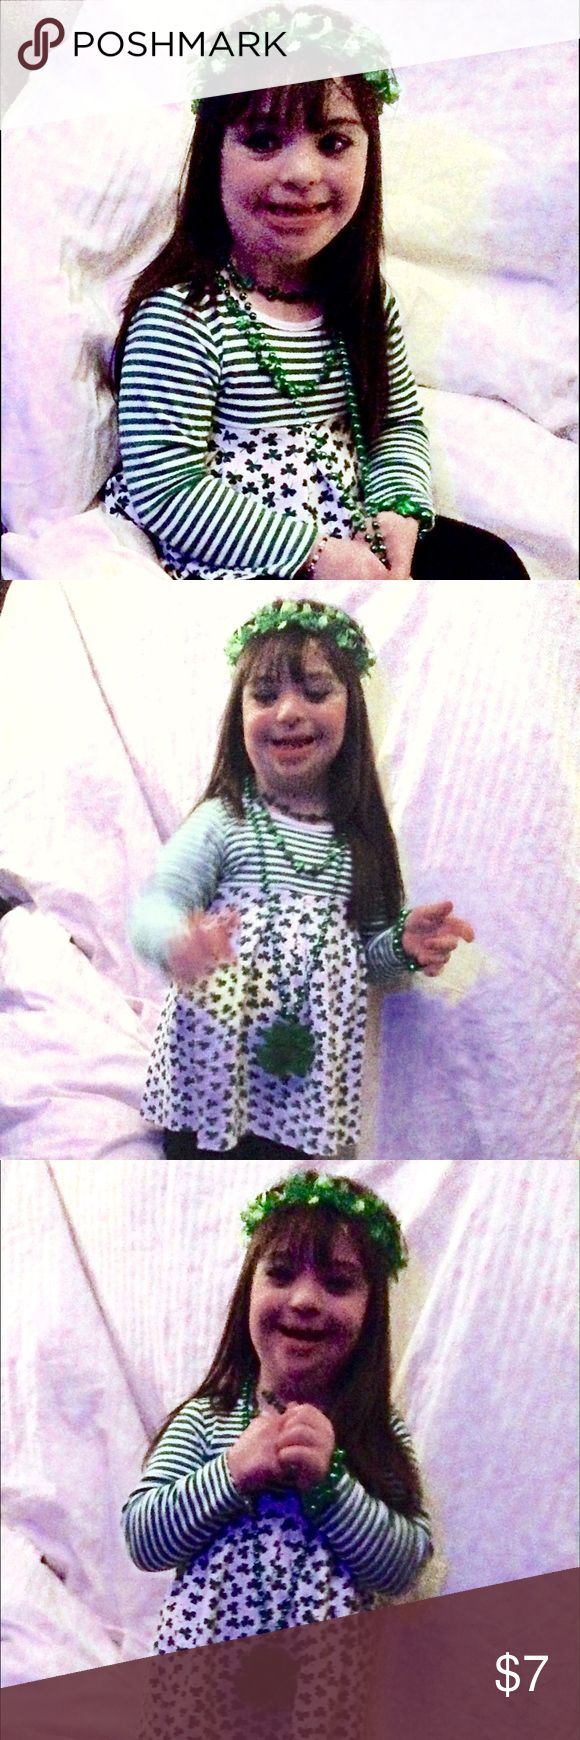 """👧🏻‼️🍀Sale🍀‼️ for World Down Syndrome Day🎗 March 21 is World 🌎 Down Syndrome day! People with Down syndrome have 47 chromosomes instead of 46 like most people. To celebrate people like me (I'm Sarah-in the photo) who have Down syndrome (""""Up"""" syndrome to me), $ from items in our closet marked with a🎗will be donated to DSAW (Down Syndrome Association of WI).  Also, items marked with 🍀 will be $7 per lucky shamrock. So, if you see 🍀🍀, then your price is $14, 🍀🍀🍀 is $21, etc. AND…"""